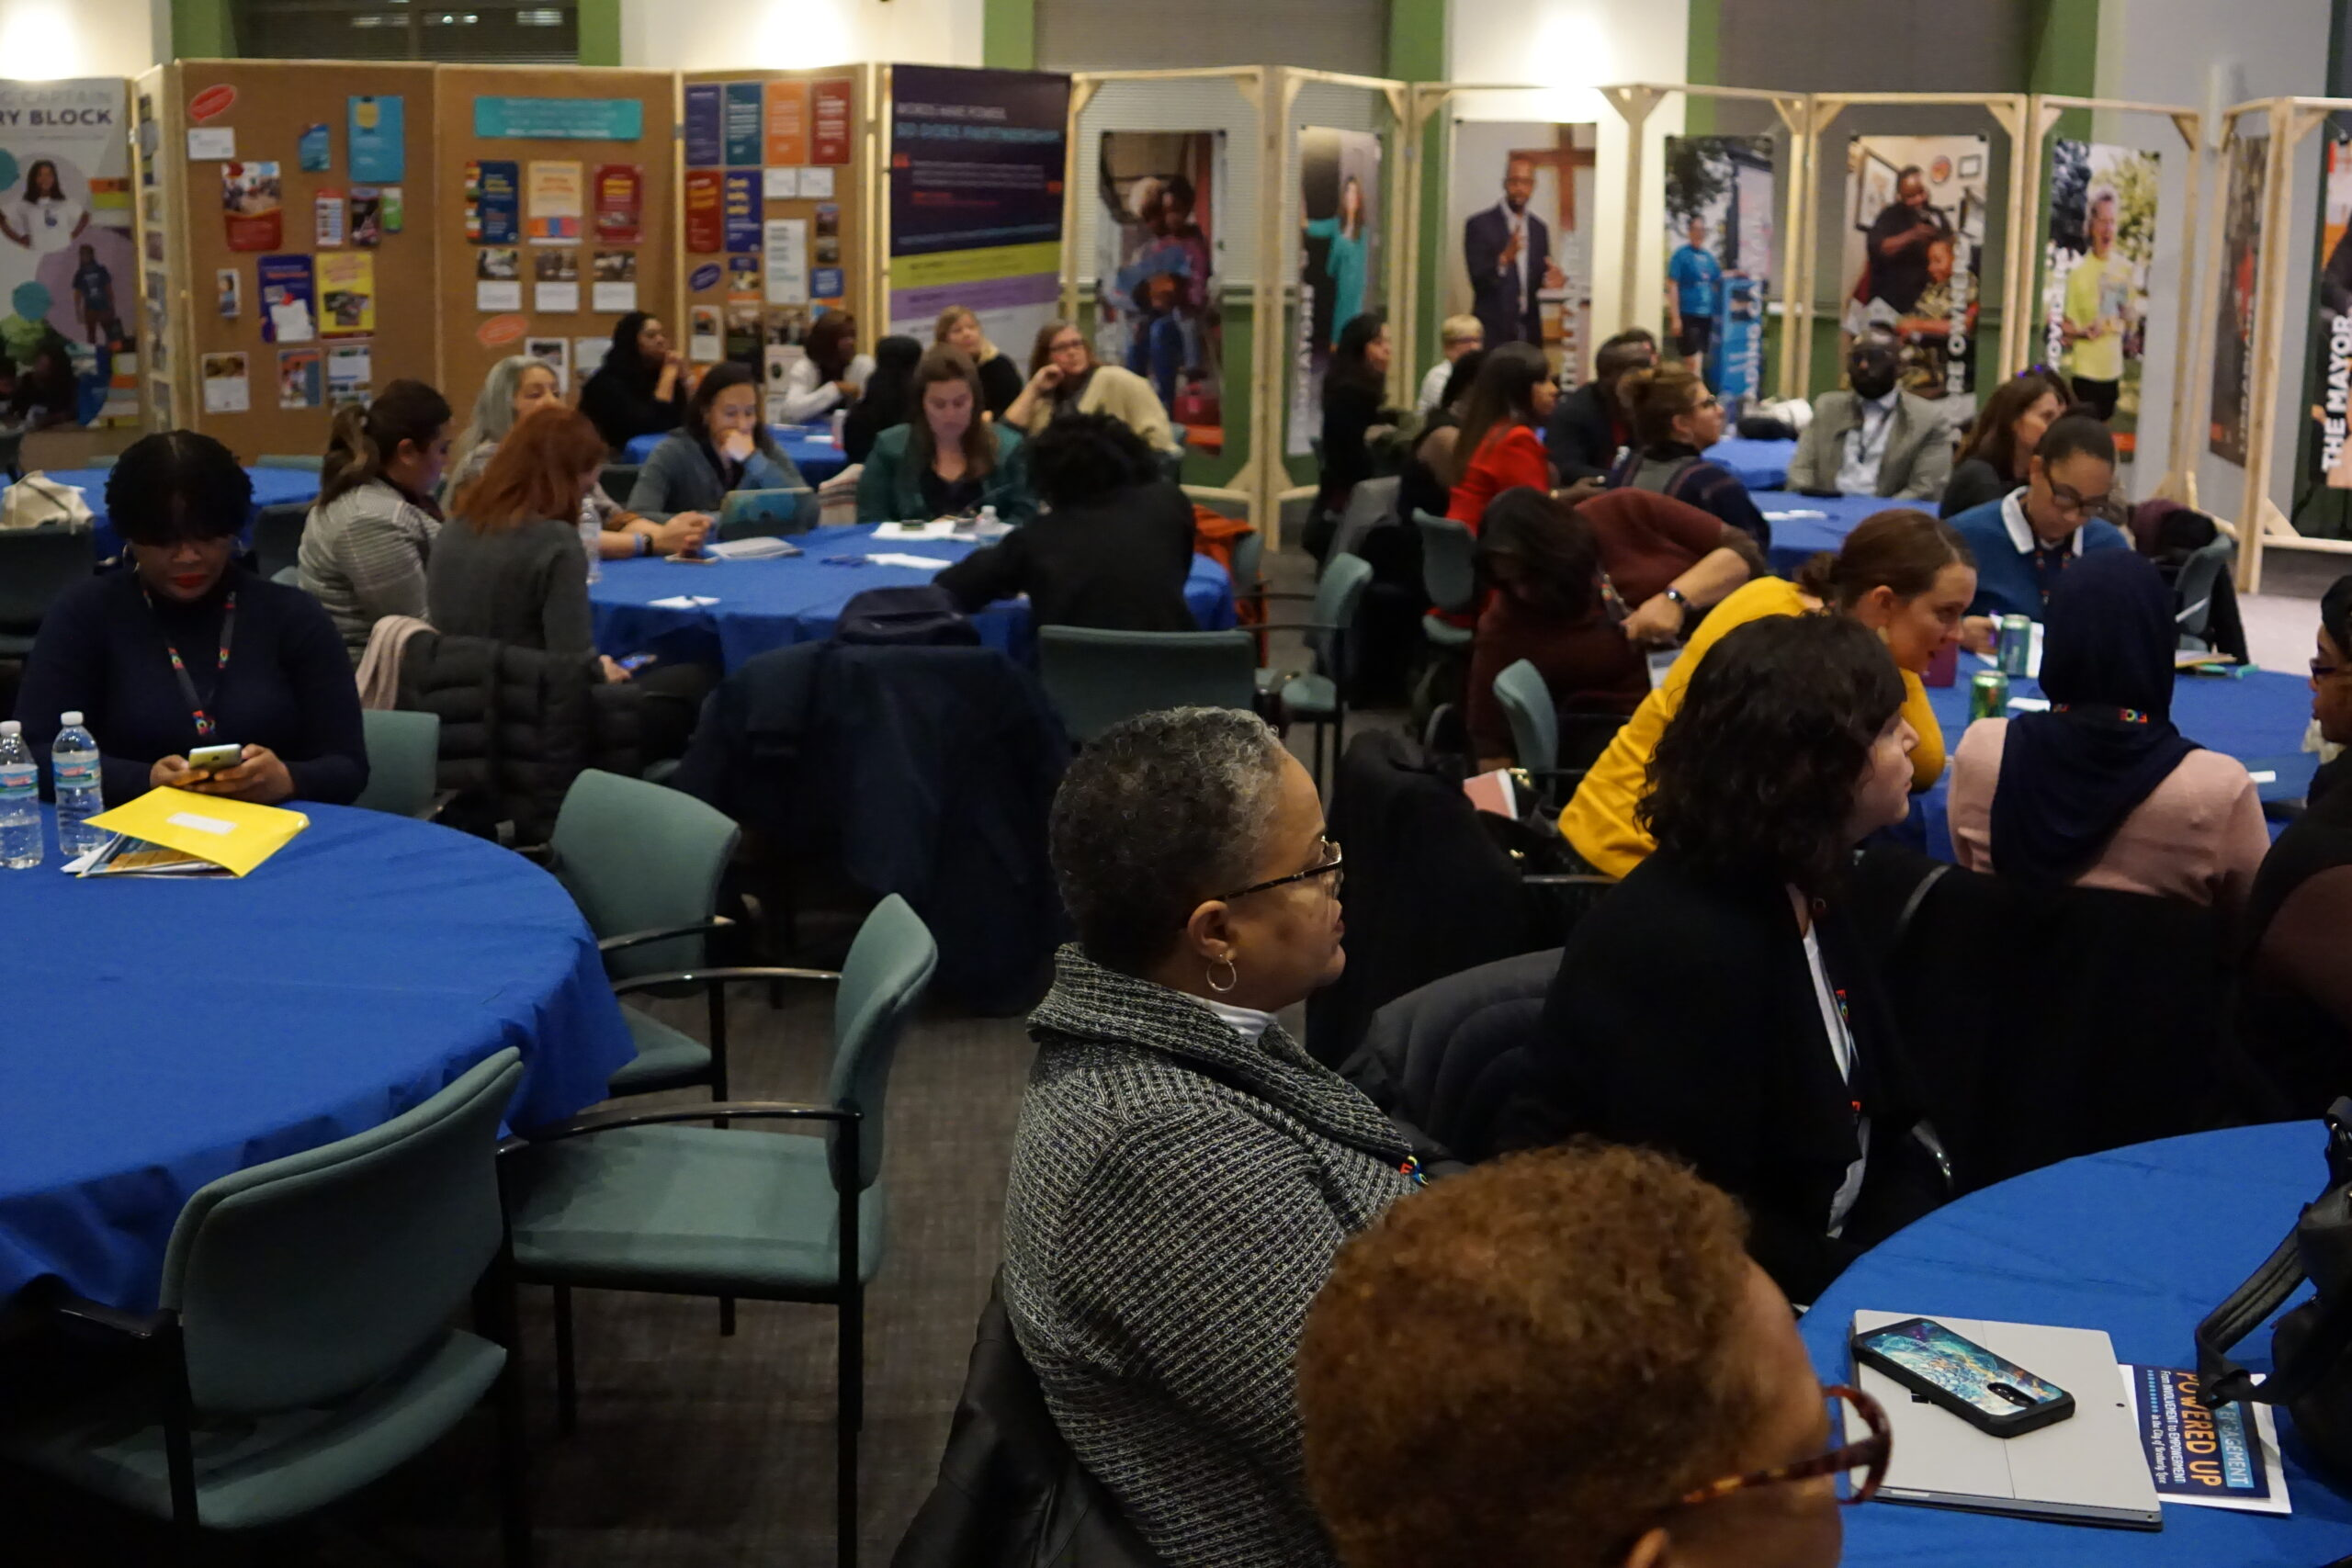 Family engagement event